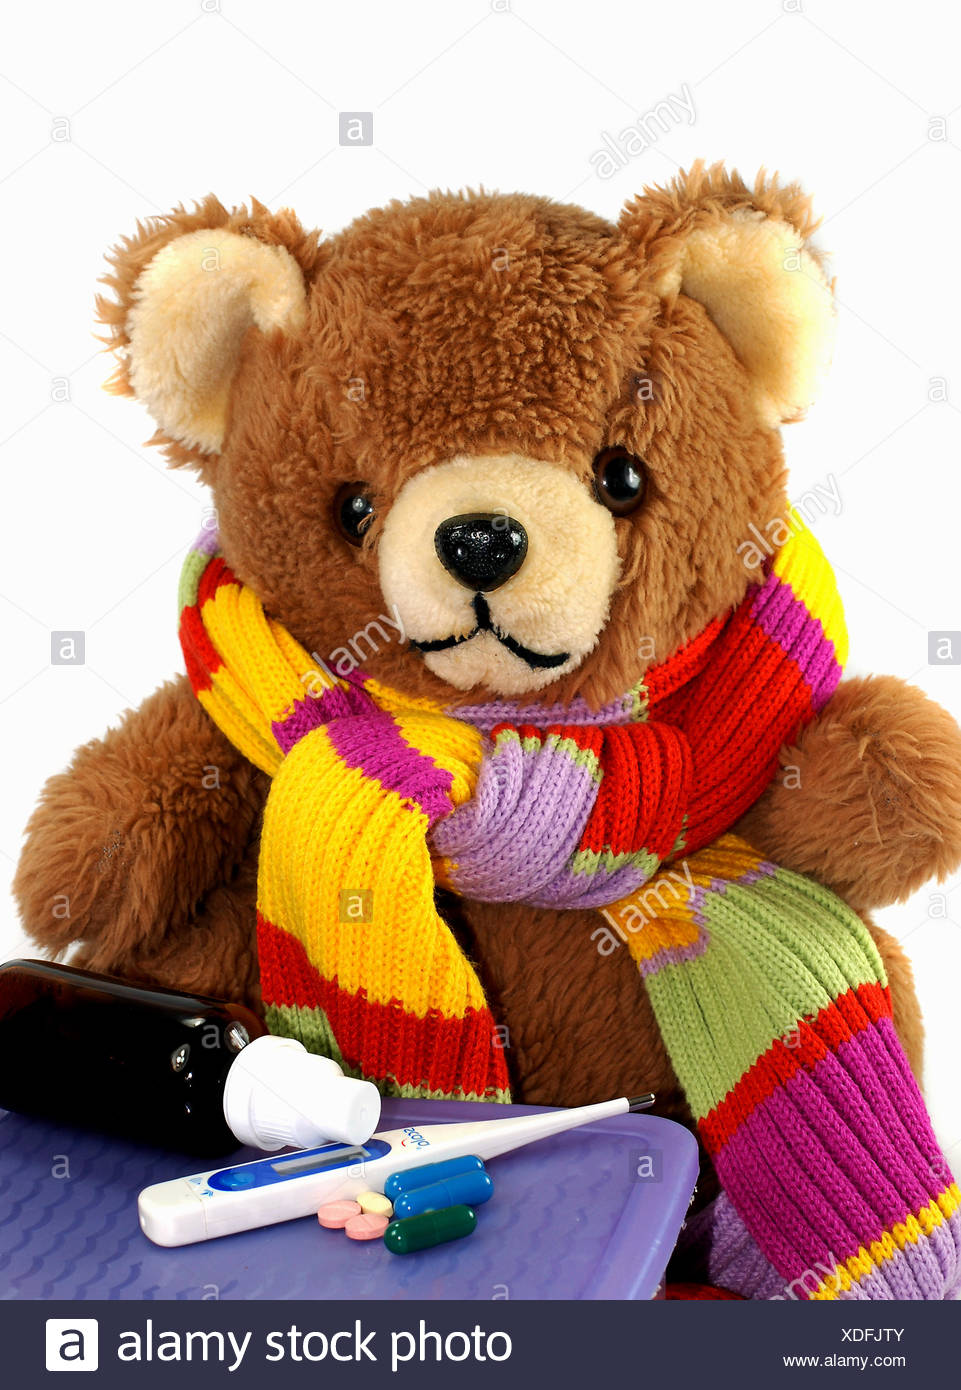 Cold catarrh teddy teddy bear teddybear flu disease illness sickness cold catarrh teddy teddy bear teddybear flu disease illness sickness sick ill altavistaventures Images